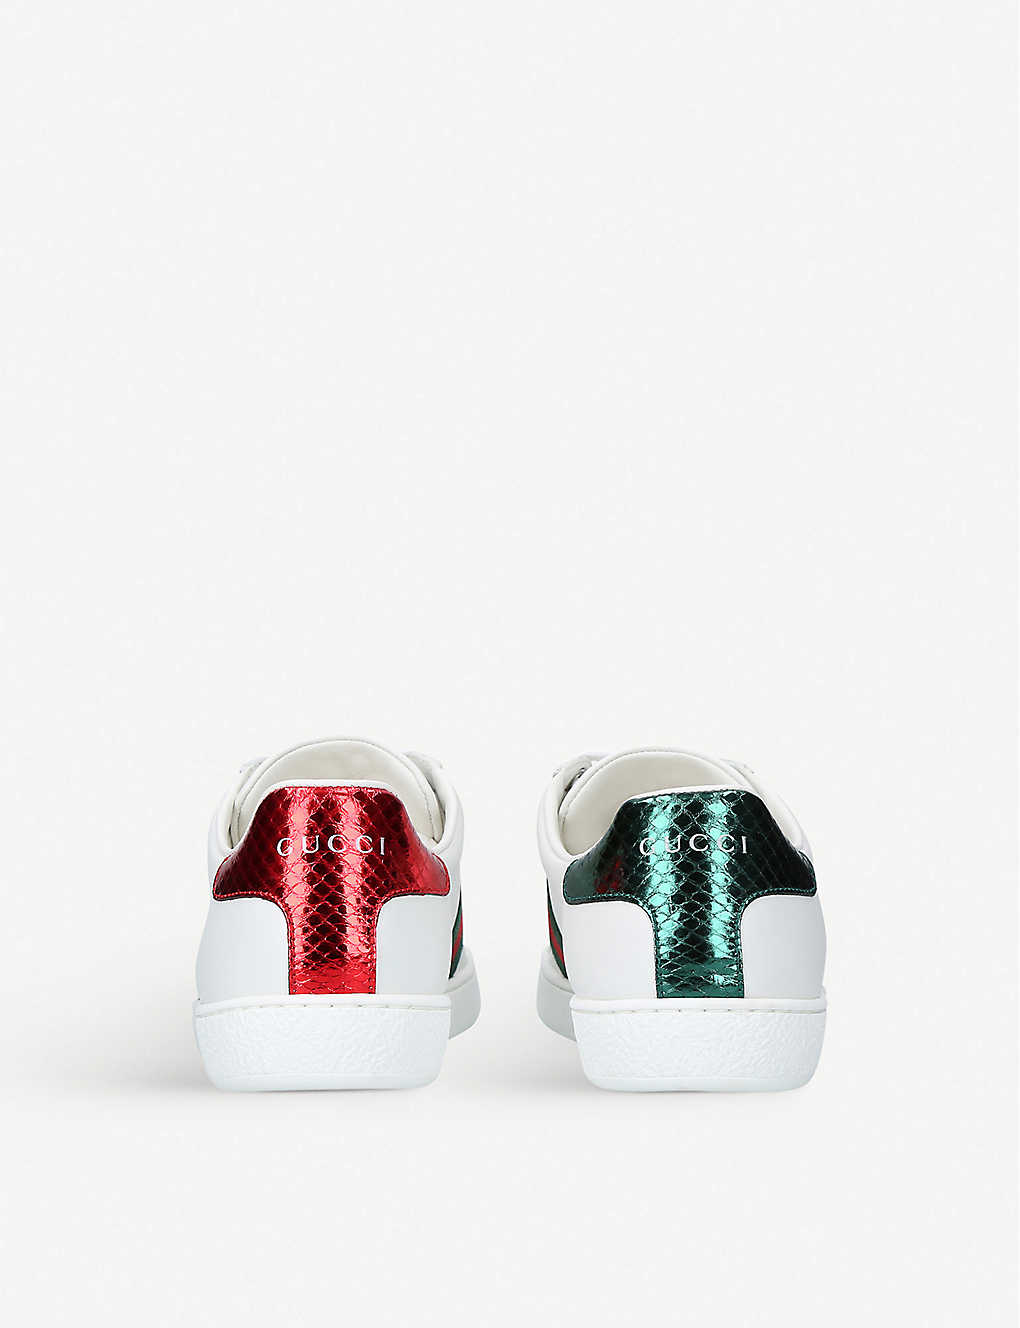 330d64c4cd5 ... Ladies New Ace bee-embroidered leather trainers - Whitered zoom